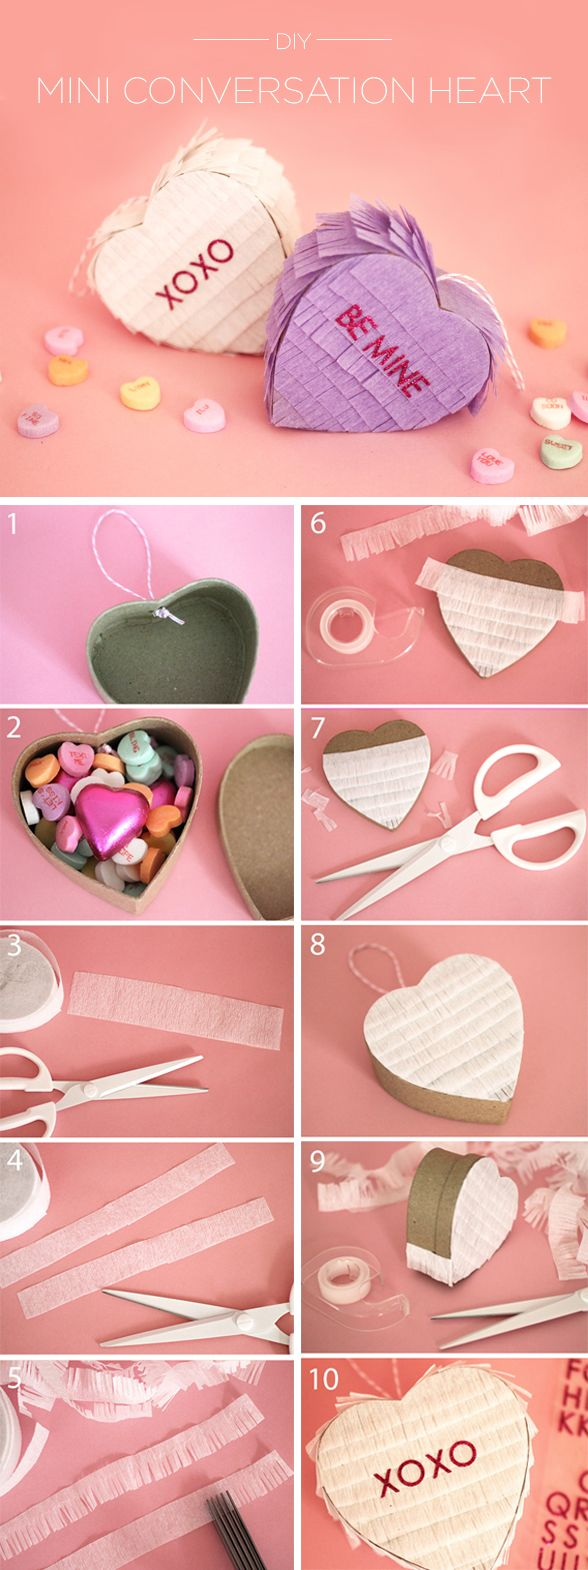 Charm your loved ones with these cute little conversation heart pinatas. #evitexoxo #valentinesday